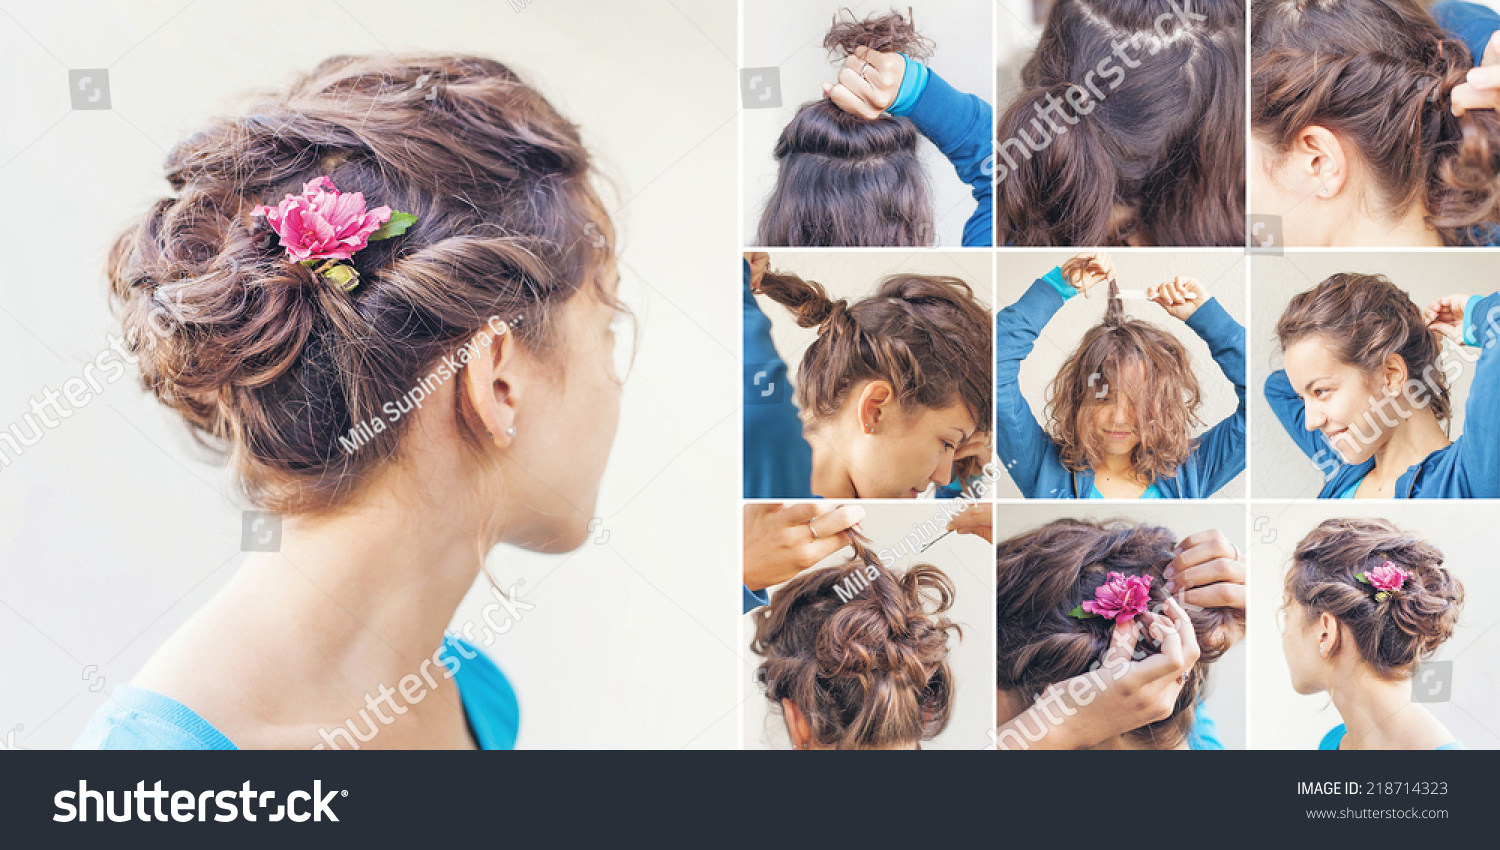 Magnificent Curly Updo Tutorial By Beauty Blogger Stock Photo 218714323 Short Hairstyles Gunalazisus